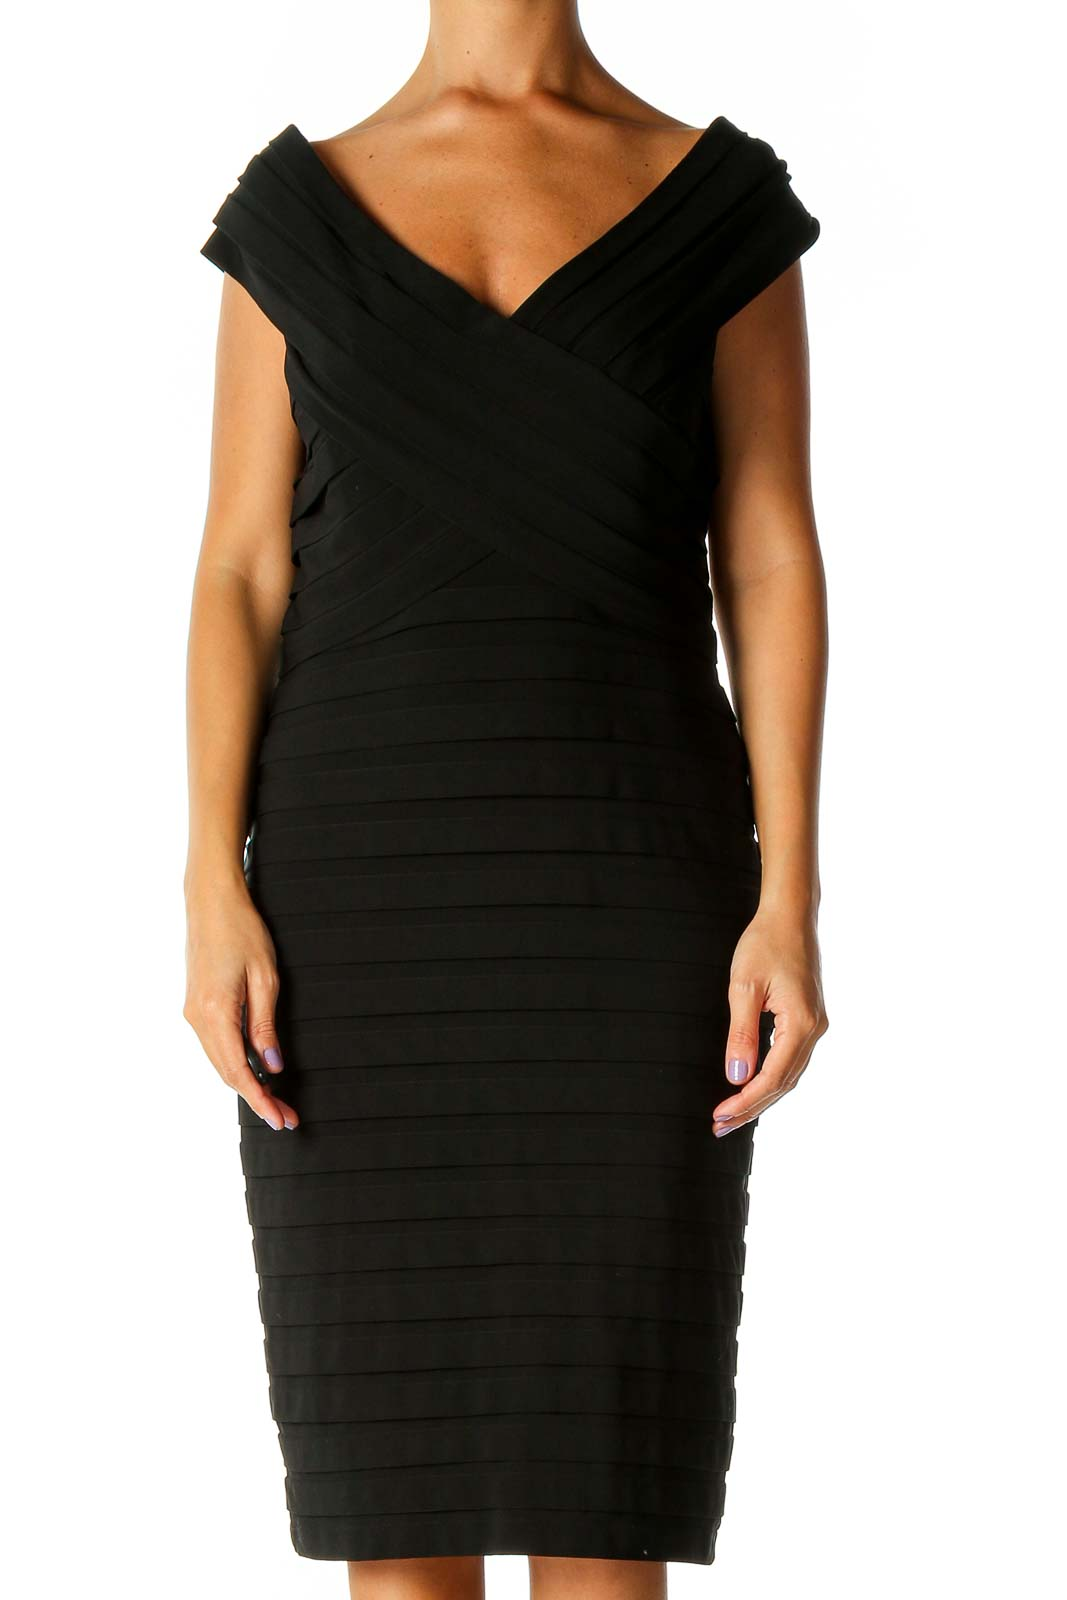 Black Solid Chic Sheath Dress Front